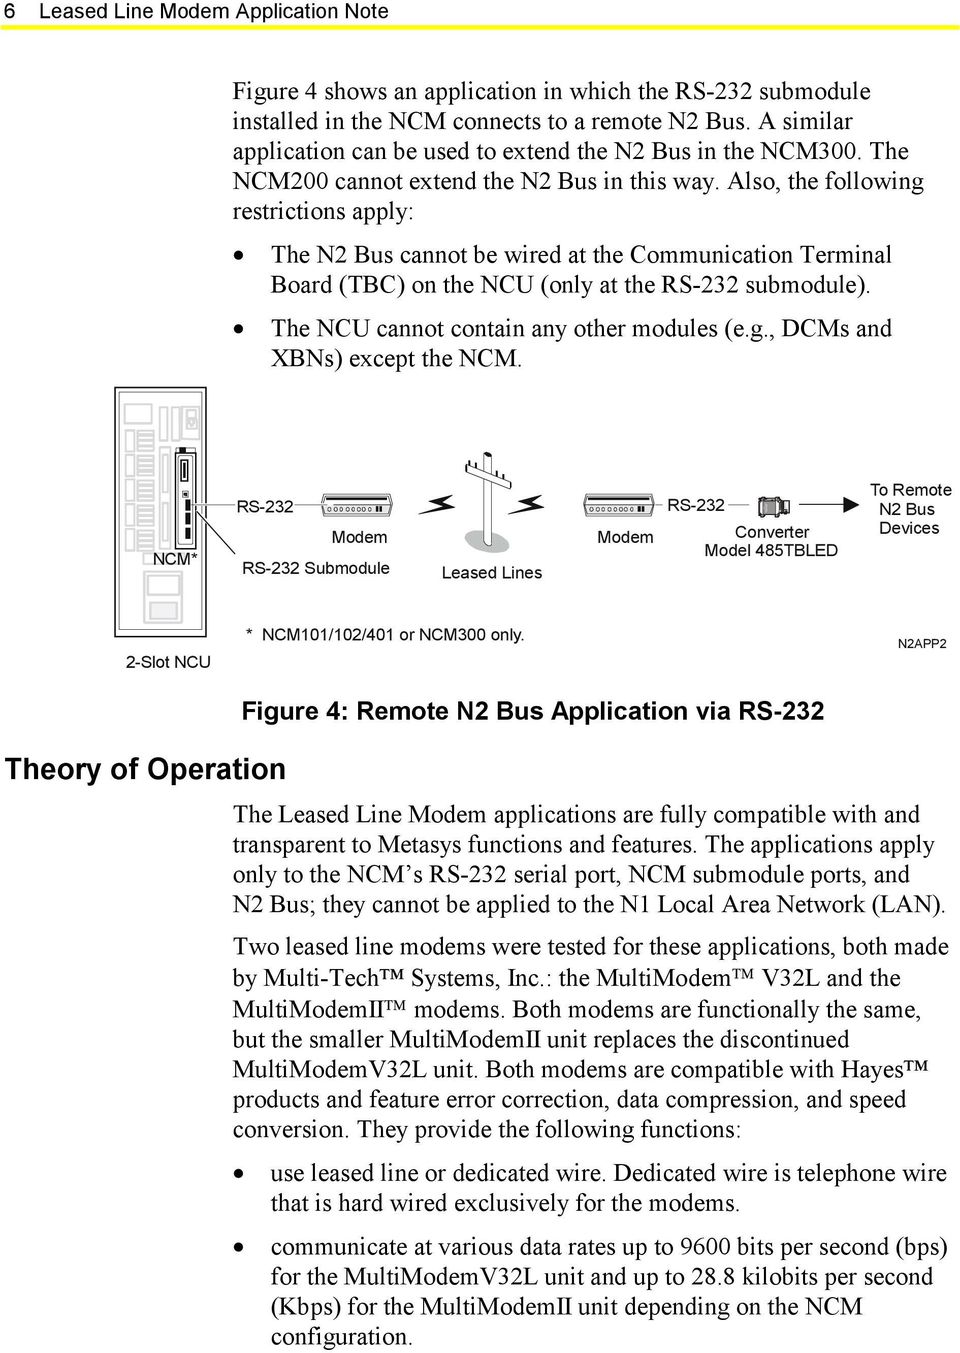 Also, the following restrictions apply: The N2 Bus cannot be wired at the Communication Terminal Board (TBC) on the NCU (only at the RS-232 submodule). The NCU cannot contain any other modules (e.g., DCMs and XBNs) except the NCM.